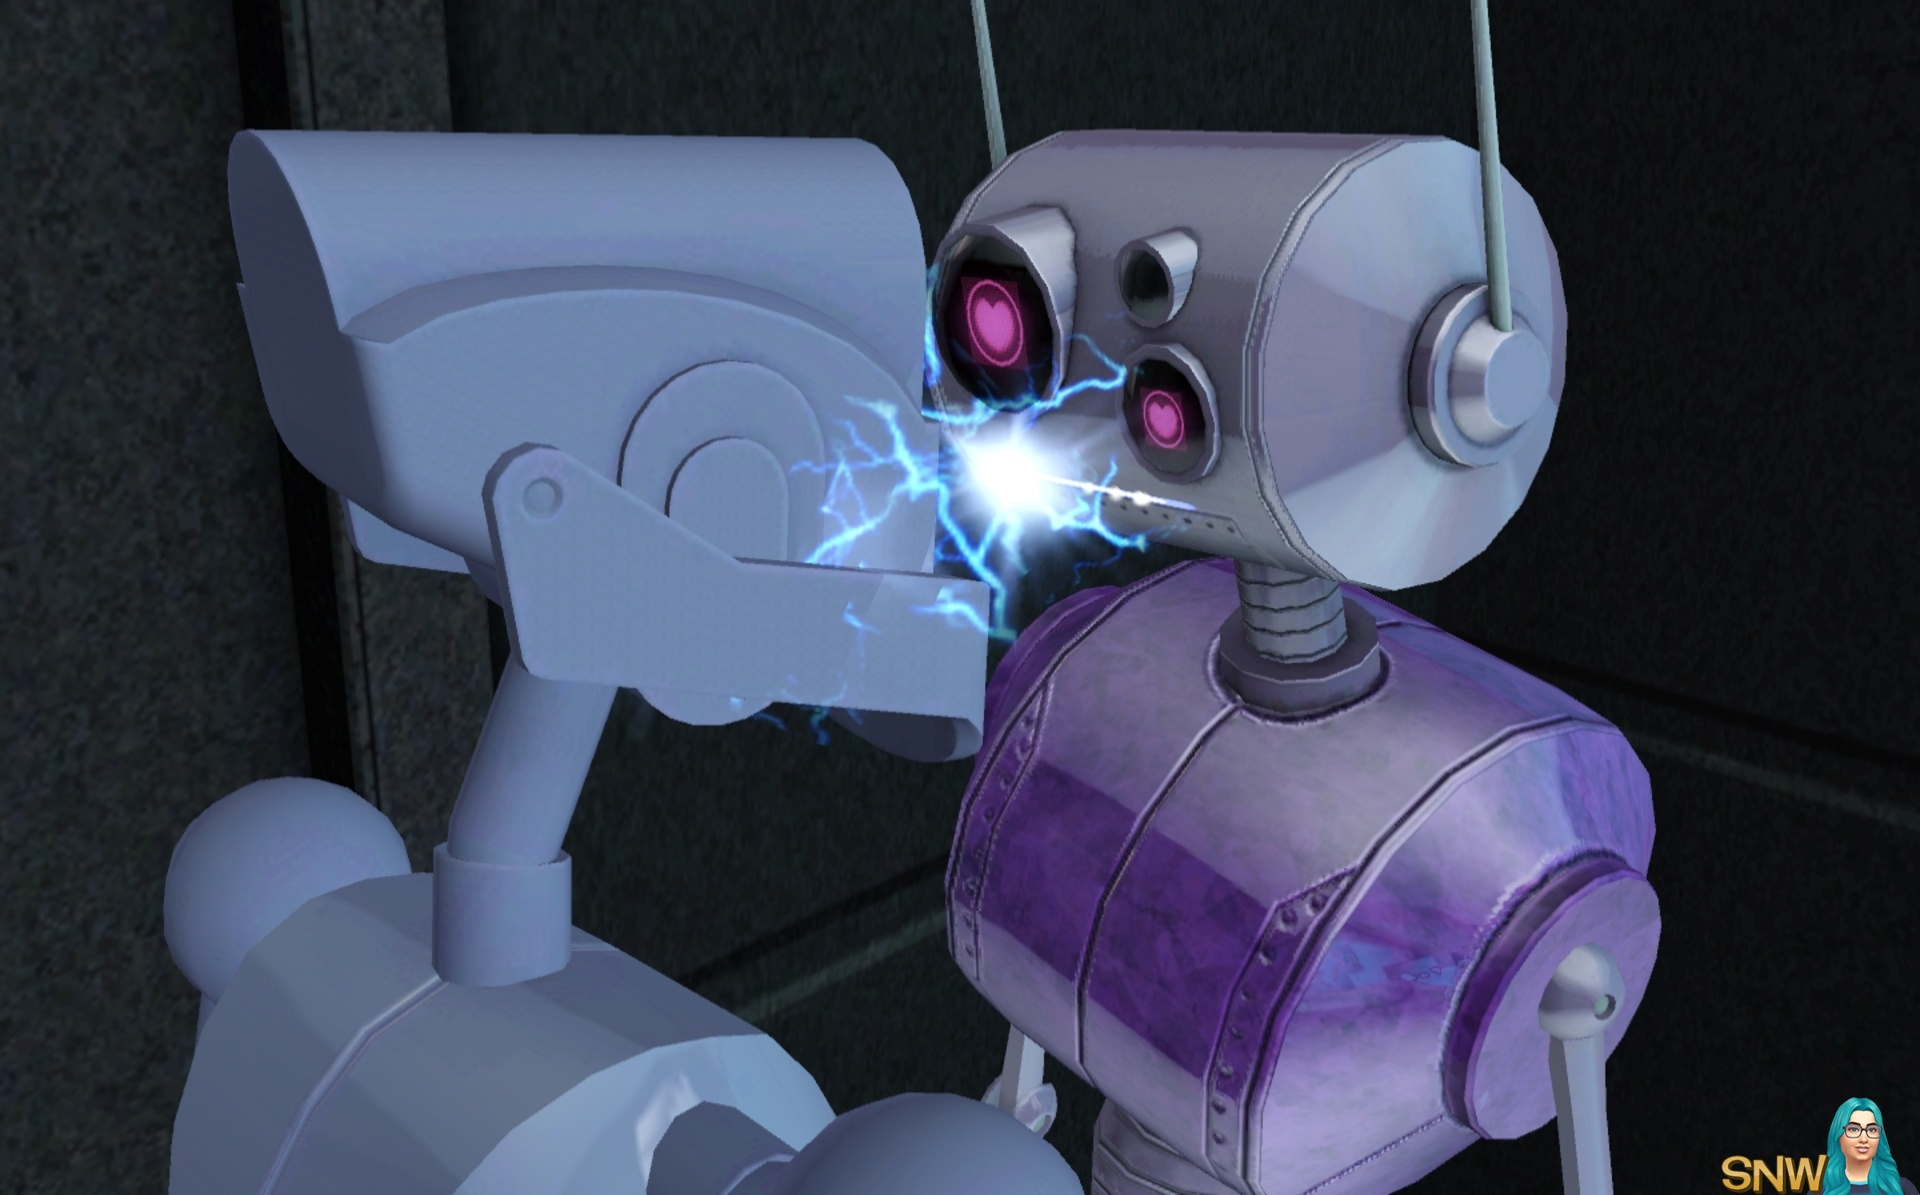 1010 Things You Should Know About Plumbots | SNW